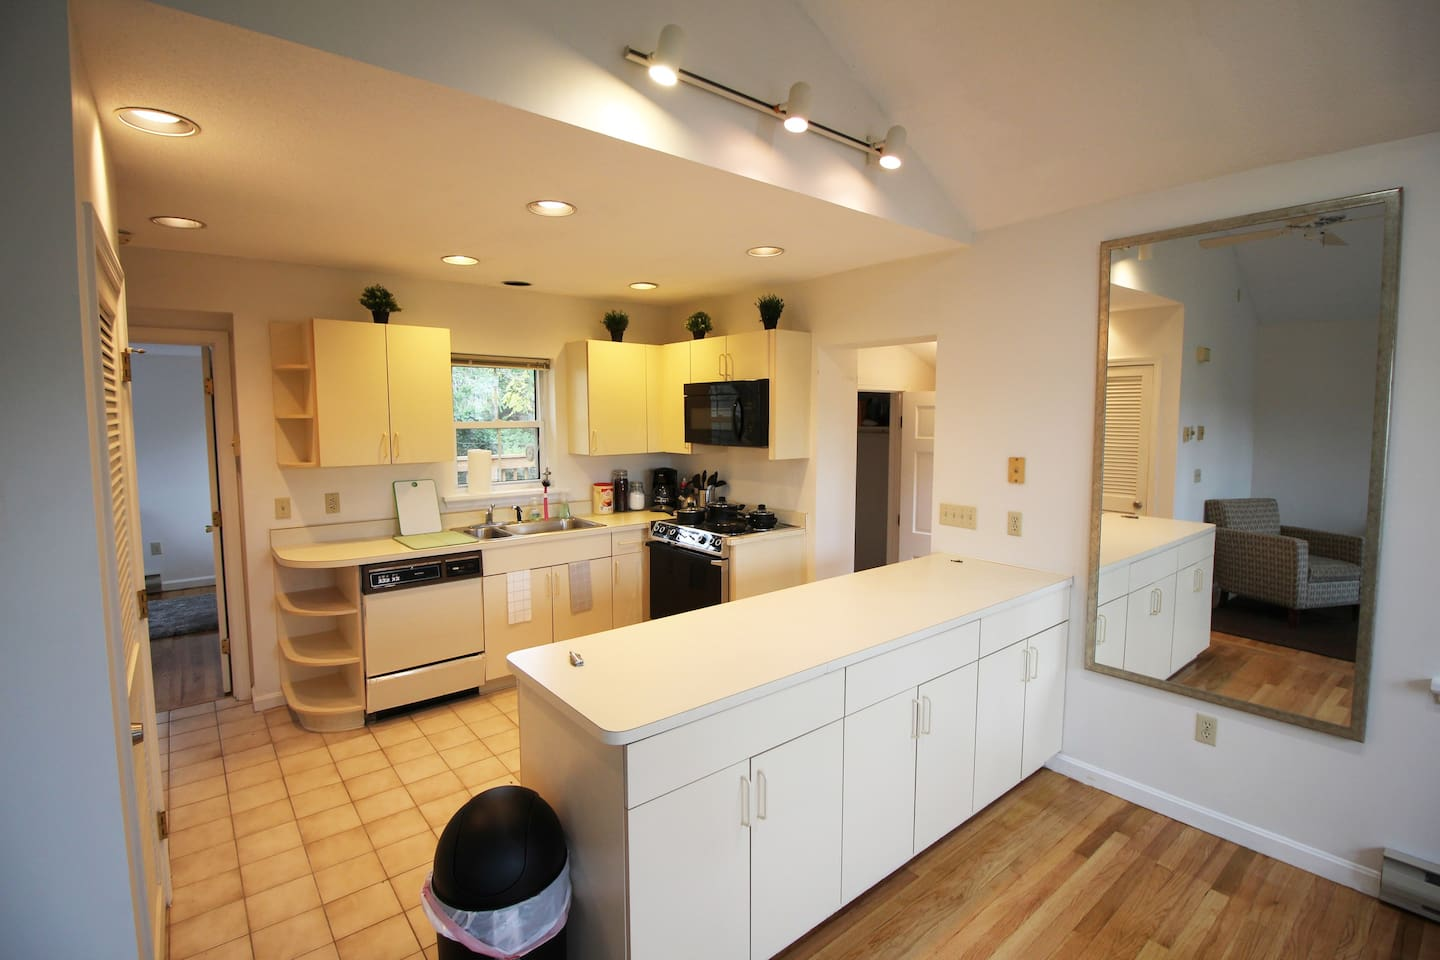 This is the kitchen in the apartment.